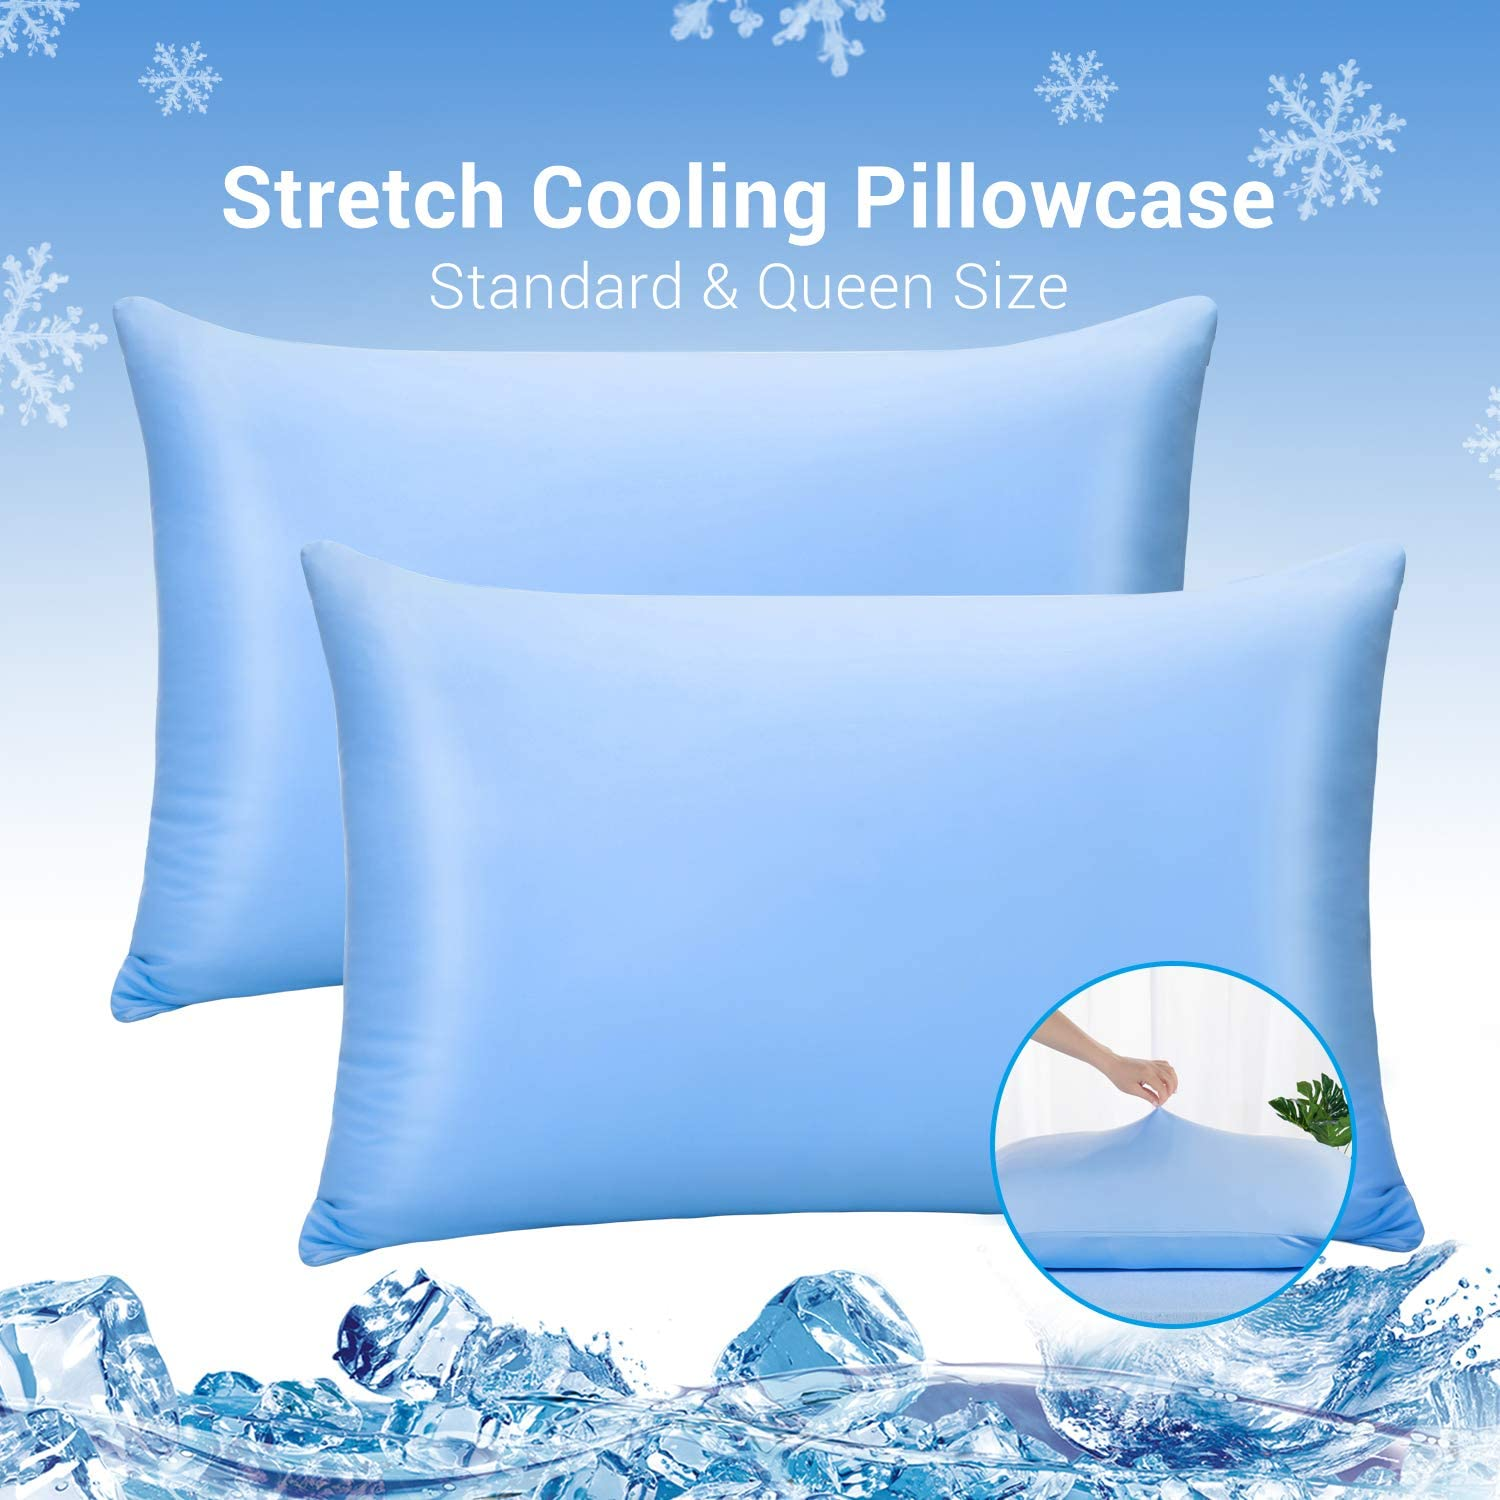 LUXEAR Pillowcases, 2 Pack Elastic Cooling Pillowcases Fit Standard & Queen Size Pillows with Japanese Cooling Fiber, Ultra-Elasticity & Cooling, Anti-Static Perfect for Hair/Skin, Night Sweat